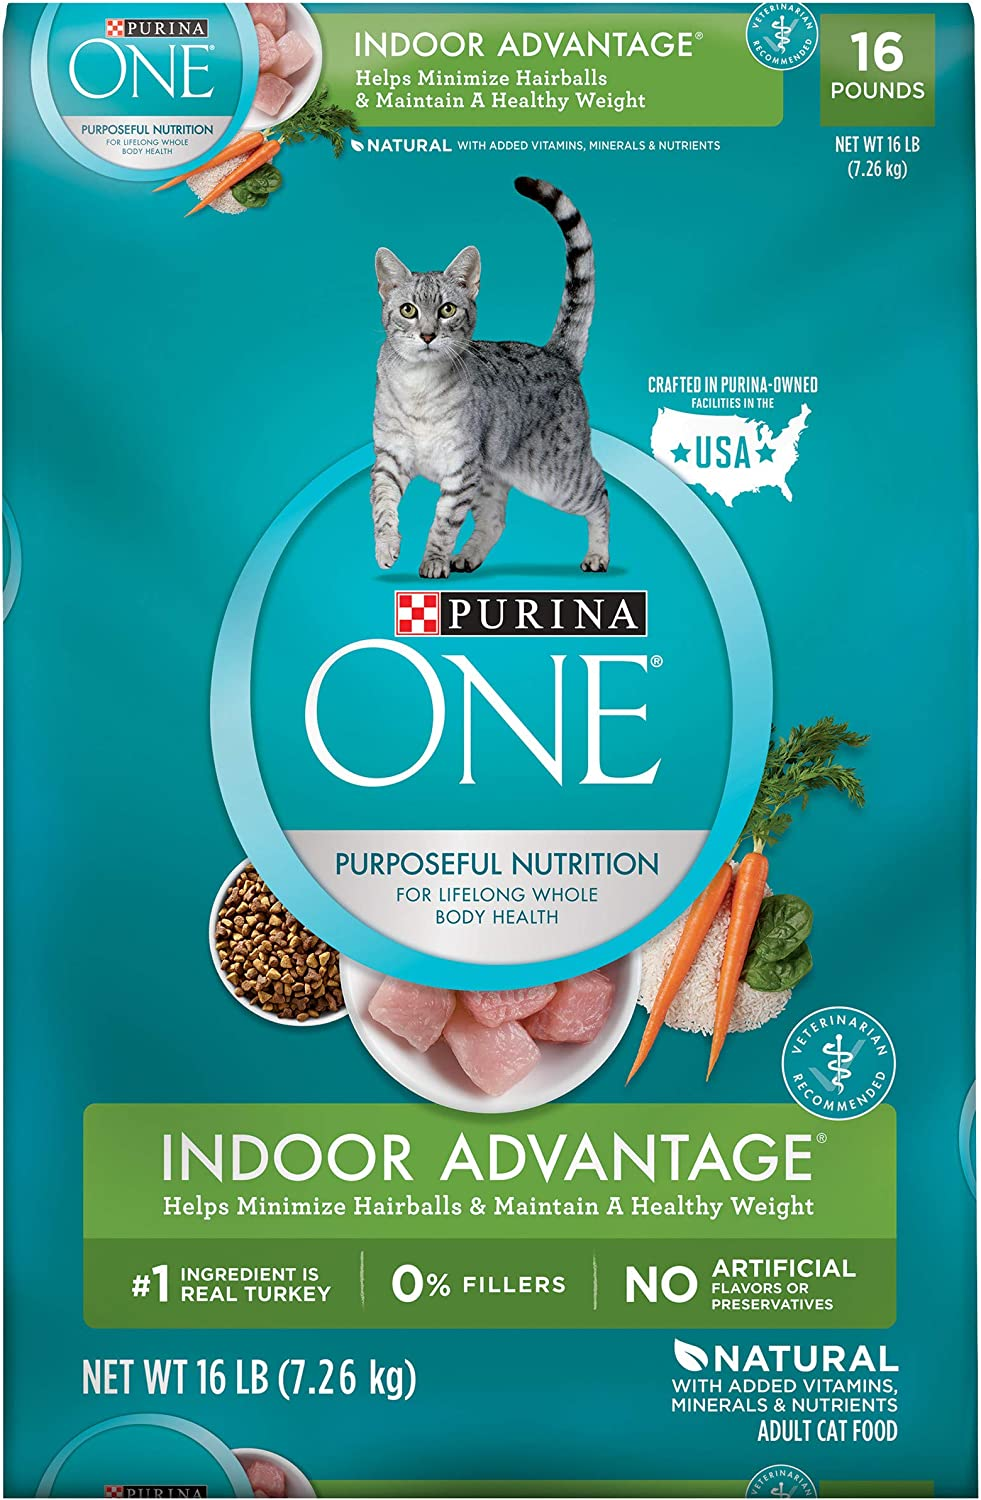 Purina ONE Hairball, Weight Control, Natural Dry Cat Food, Indoor Advantage - 16 lb. Bag : Dry Pet Food : Pet Supplies